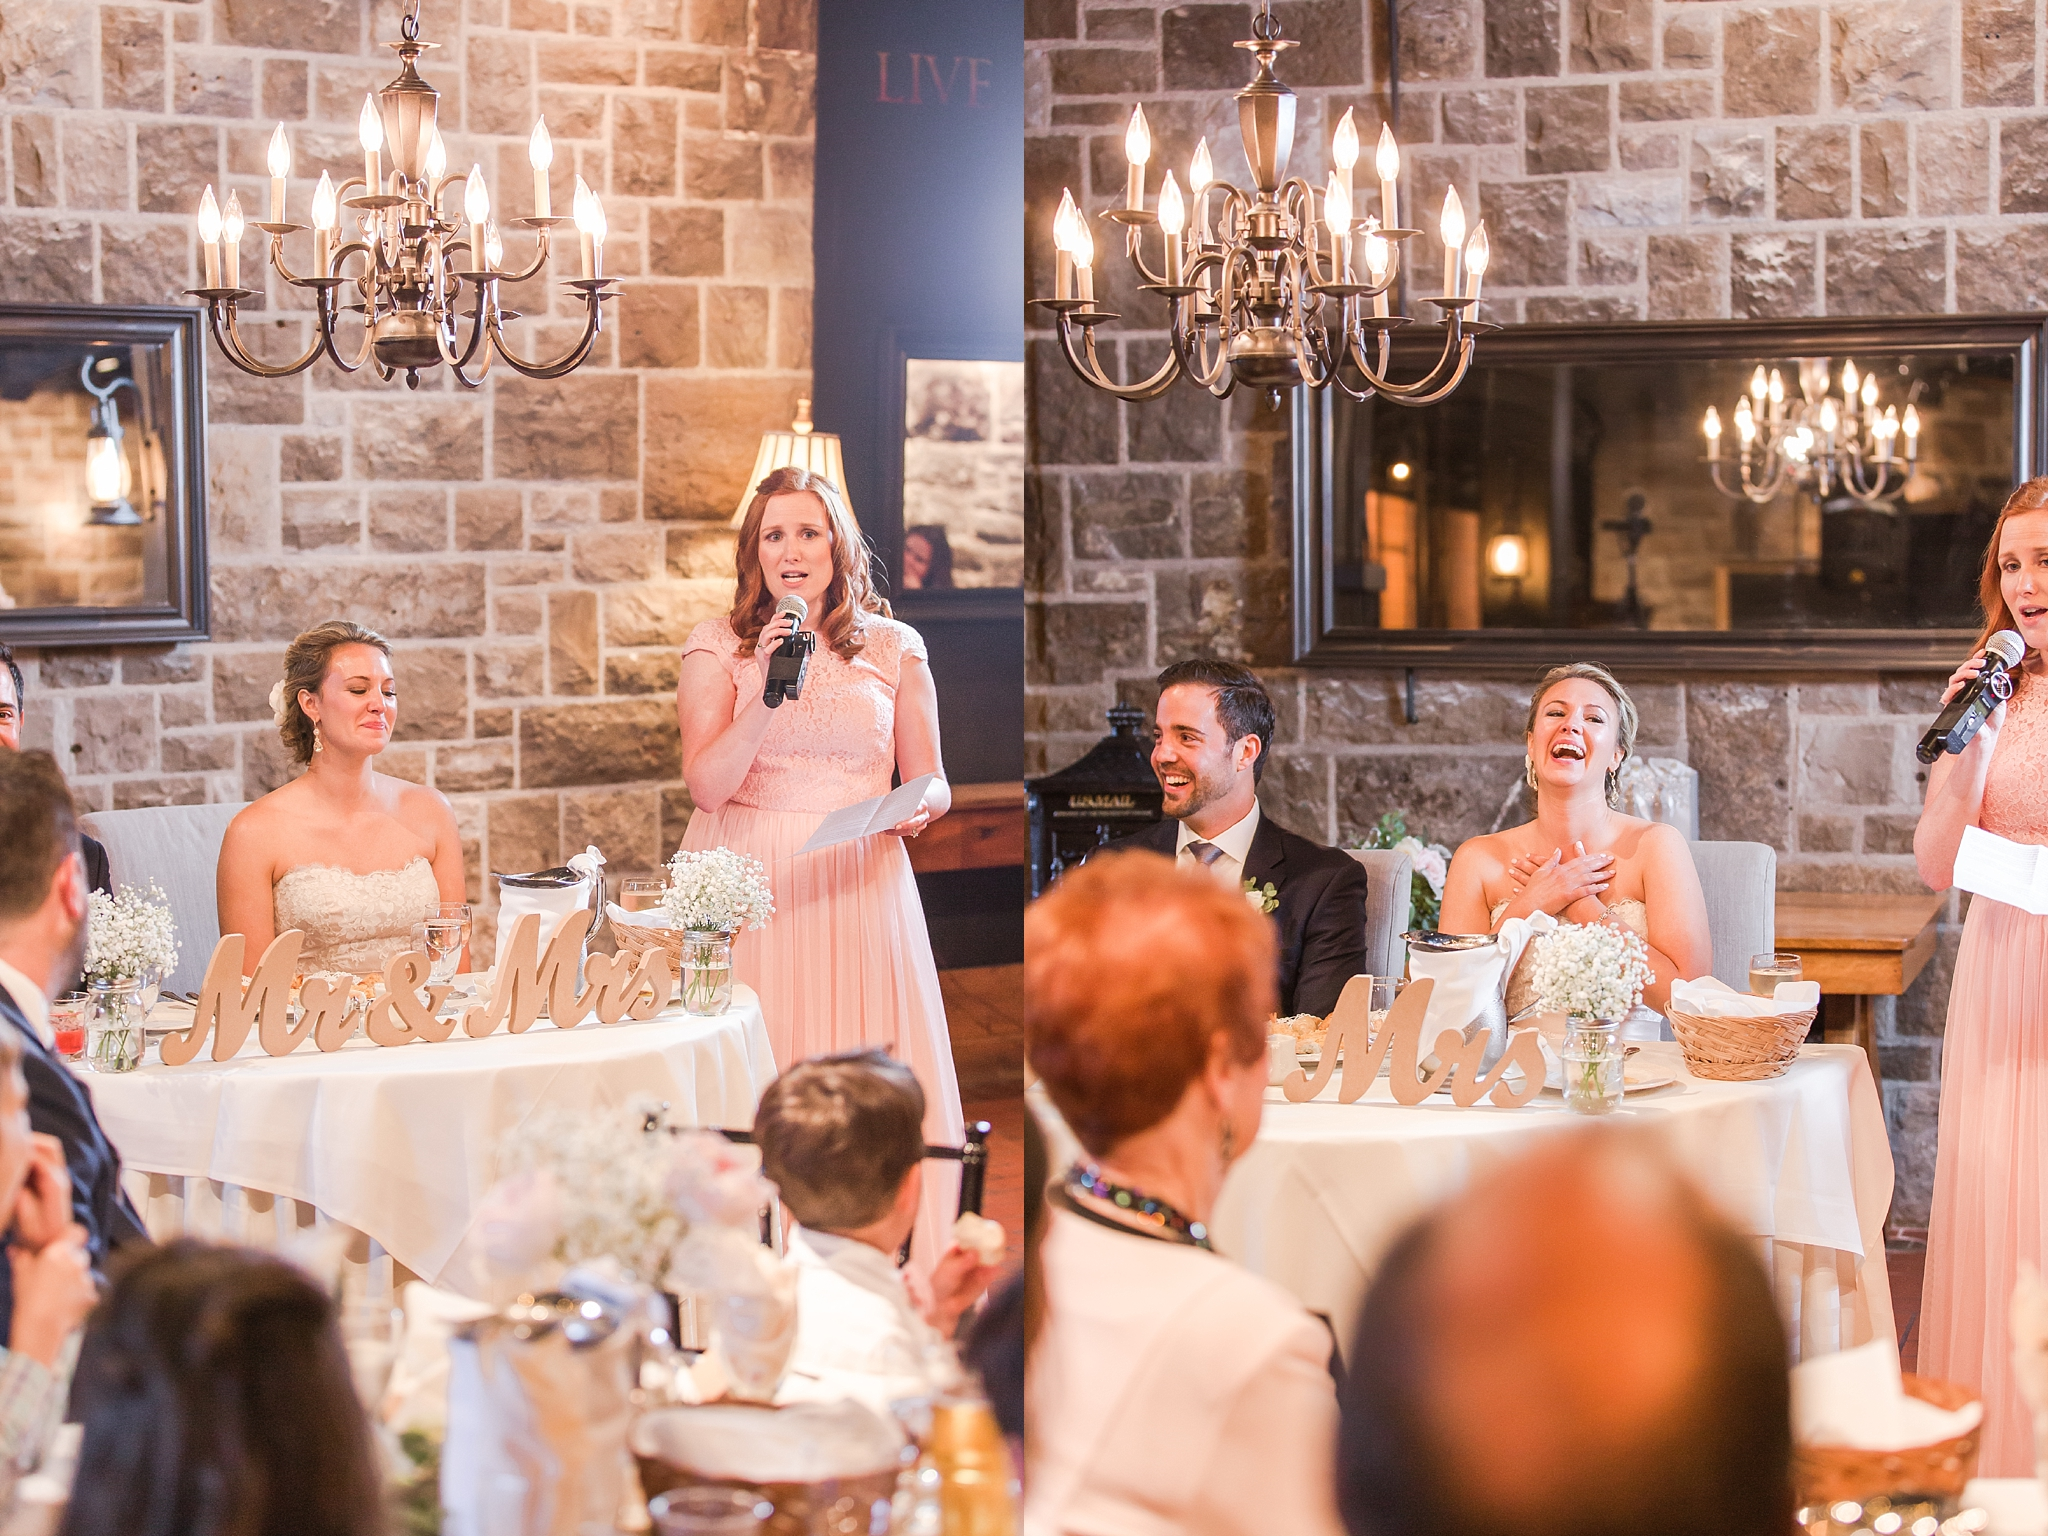 fun-candid-laid-back-wedding-photos-at-wellers-carriage-house-in-saline-michigan-and-at-the-eagle-crest-golf-resort-by-courtney-carolyn-photography_0086.jpg